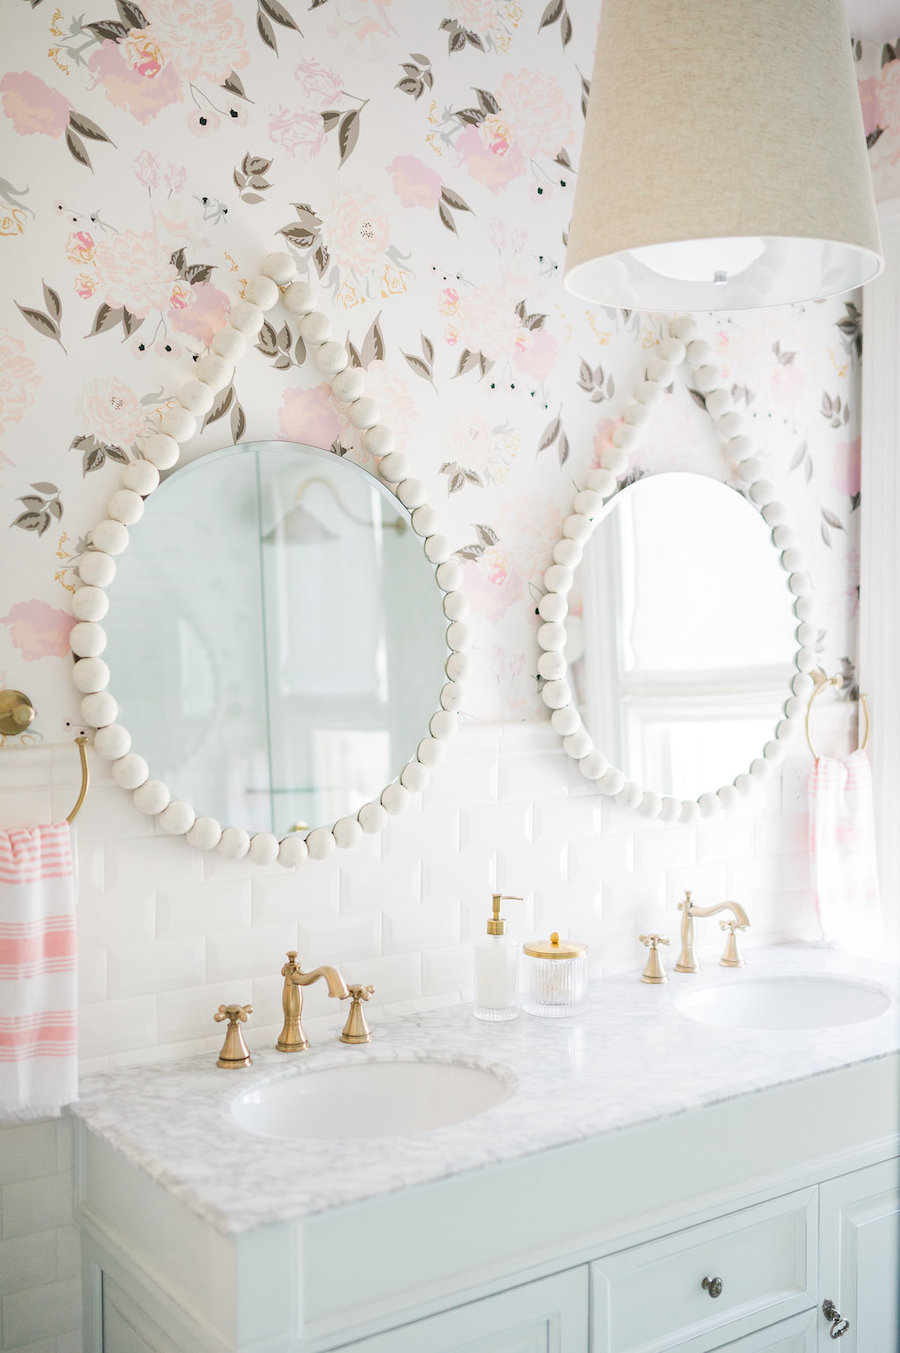 Feminine Bathroom Decor and Design via thelesliestyle